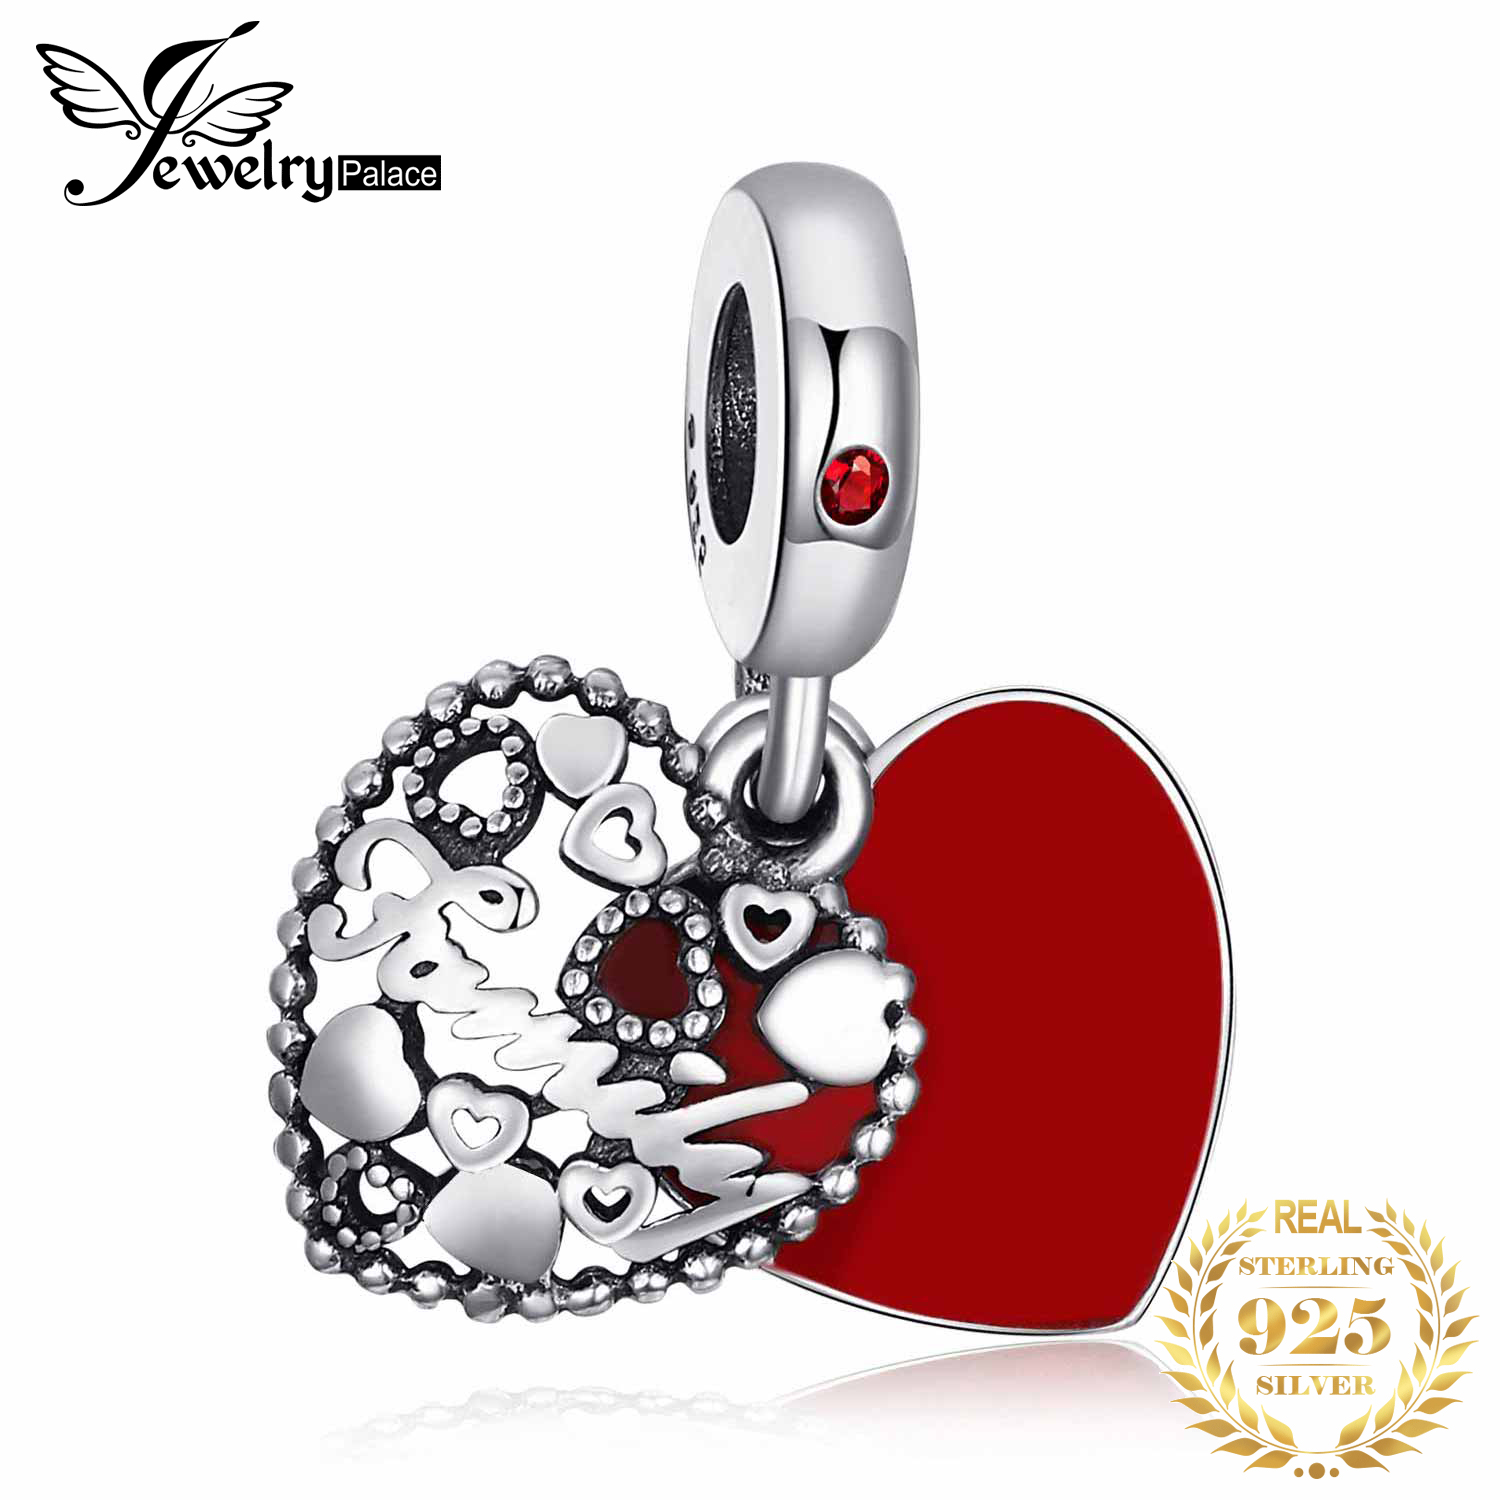 JewelryPalace Family 925 Sterling Silver Beads Charms Silver 925 Original For Bracelet Silver 925 Original Beads Jewelry Making